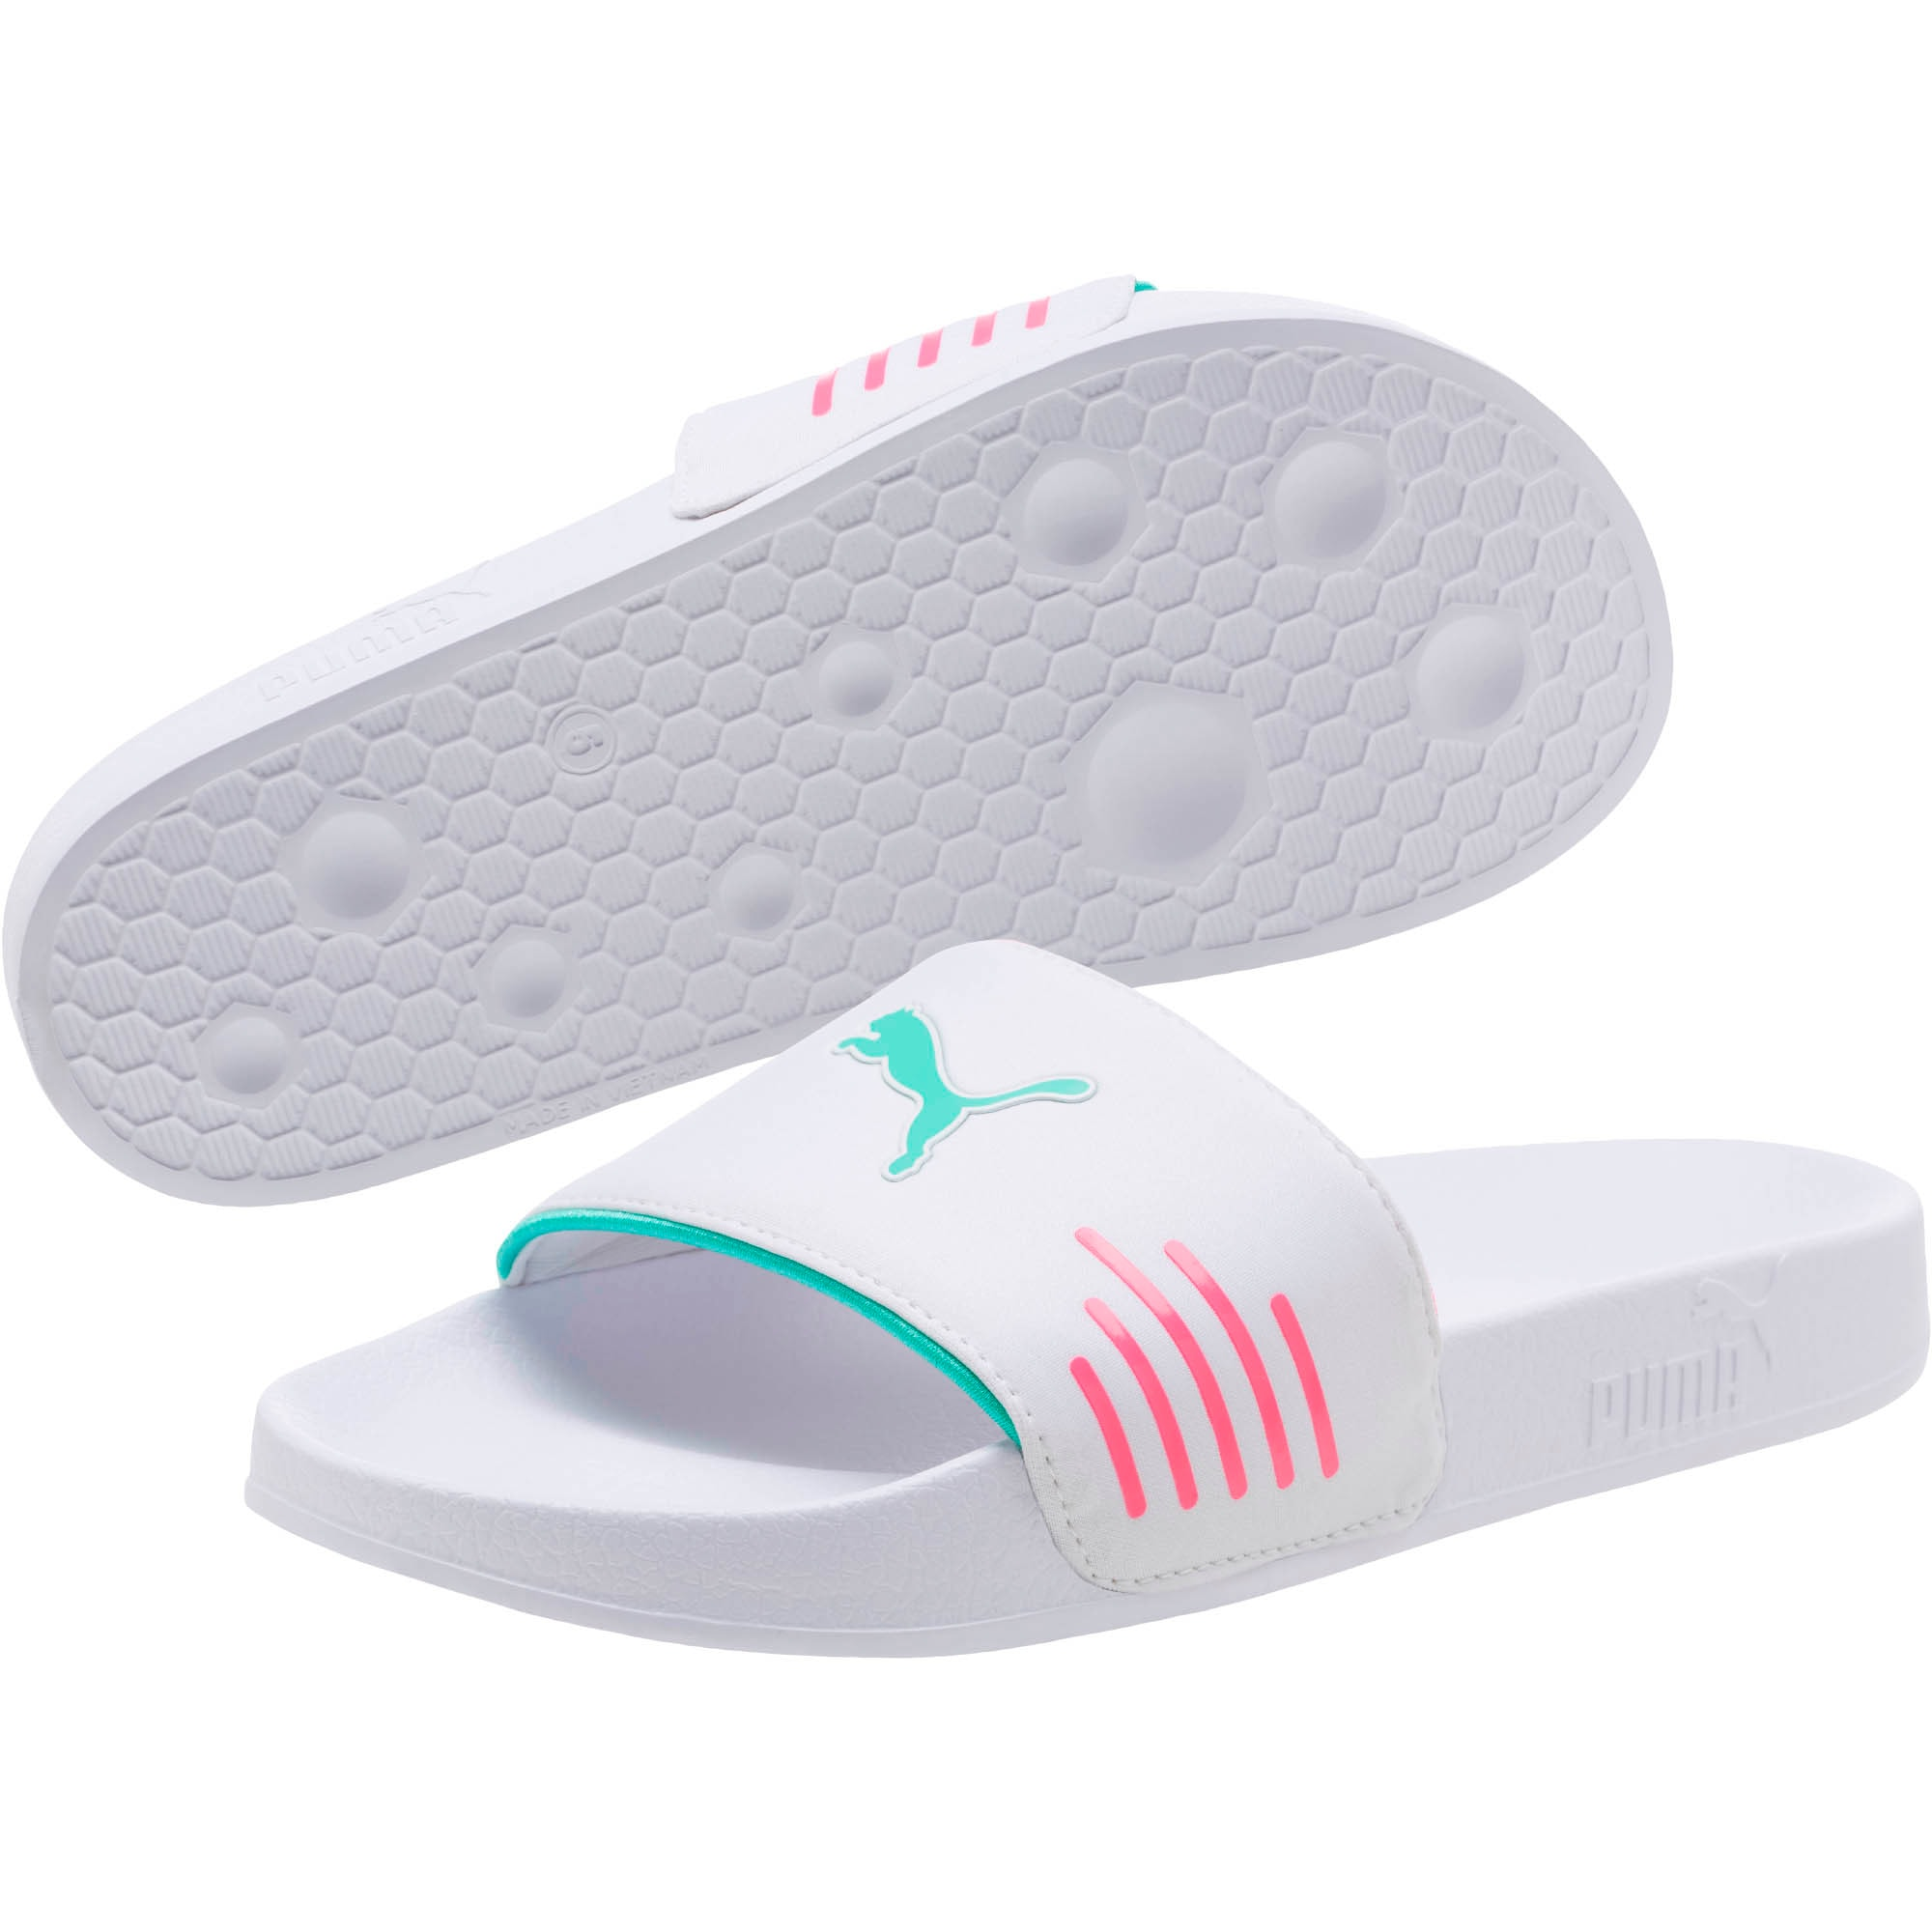 Thumbnail 2 of Leadcat Chase Women's Sandals, White-KNOCKOUT PINK-Green, medium